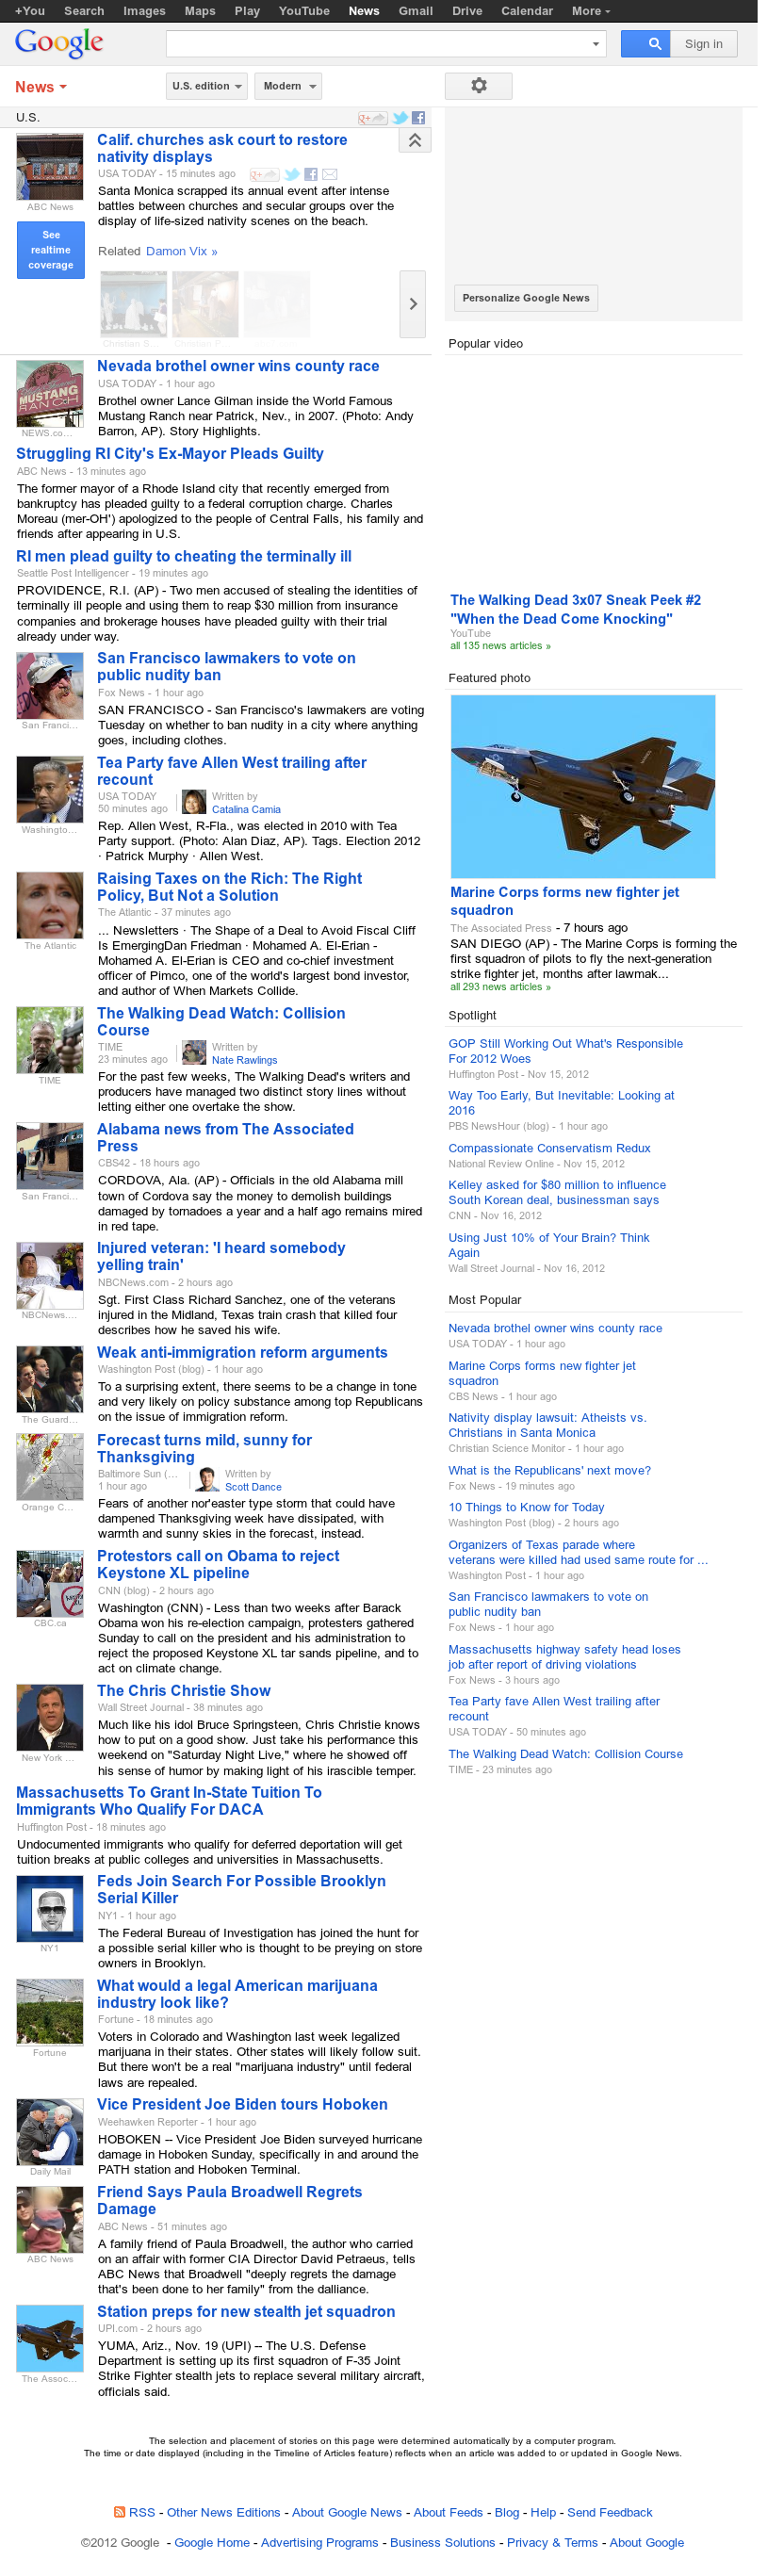 Google News: U.S. at Monday Nov. 19, 2012, 4:12 p.m. UTC